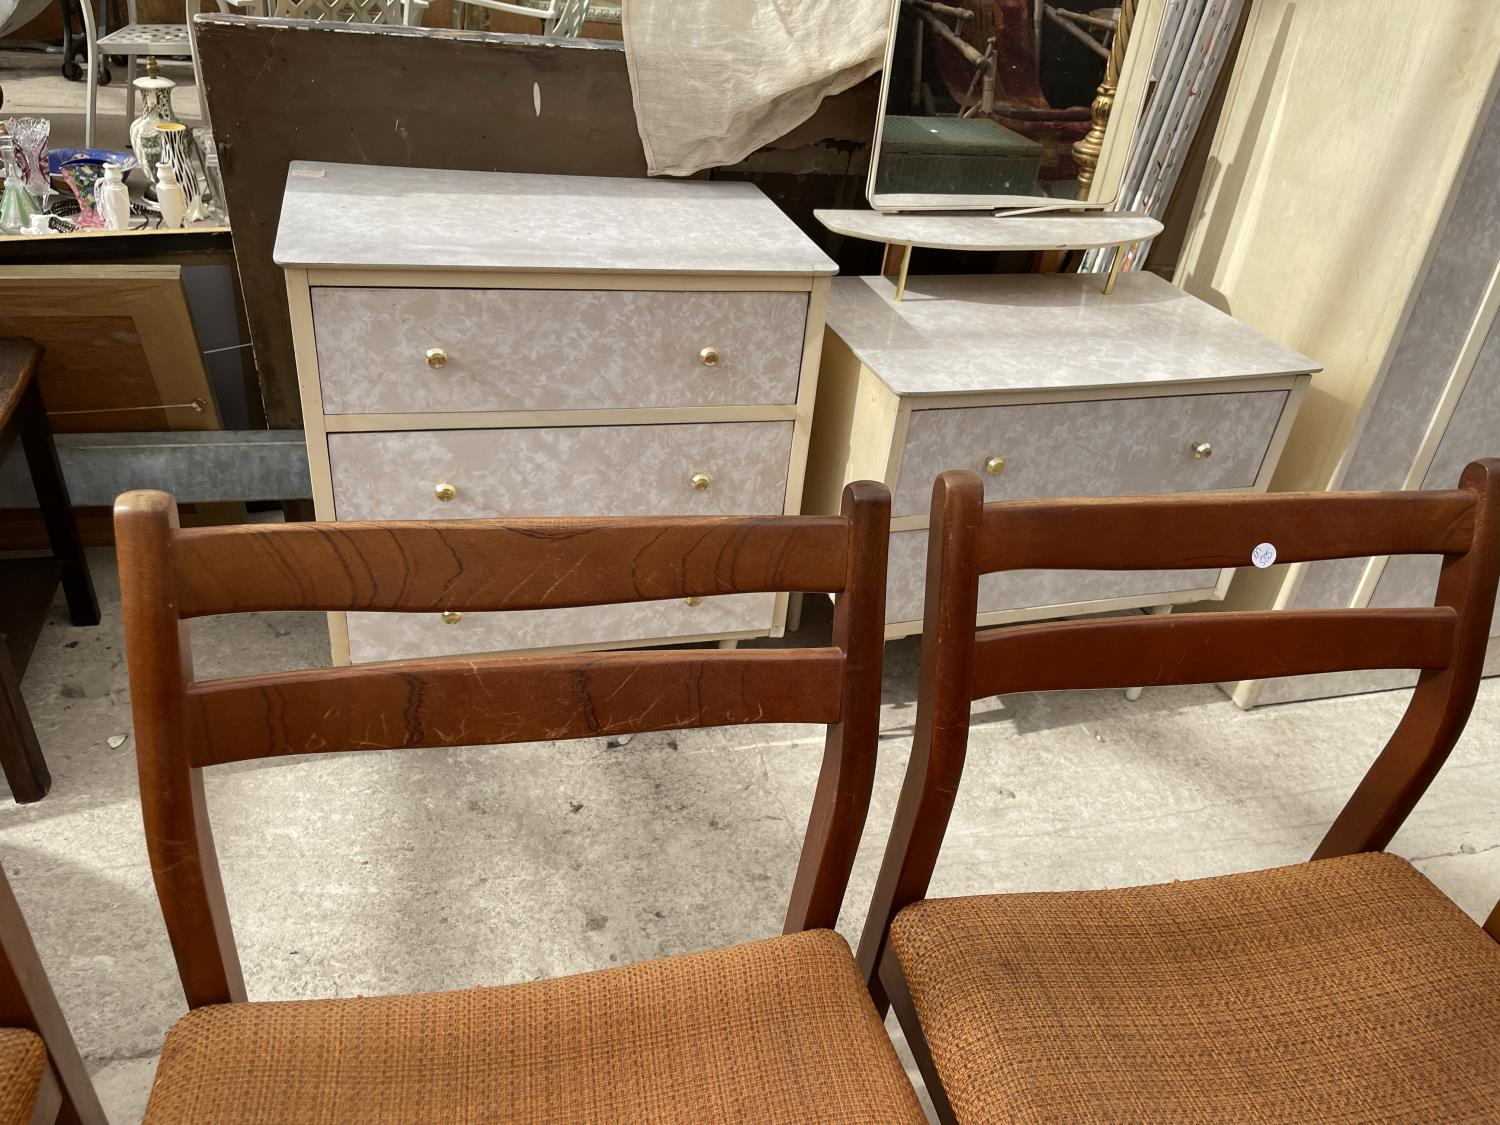 FOUR RETRO TEAK DINING CHAIRS - Image 4 of 5